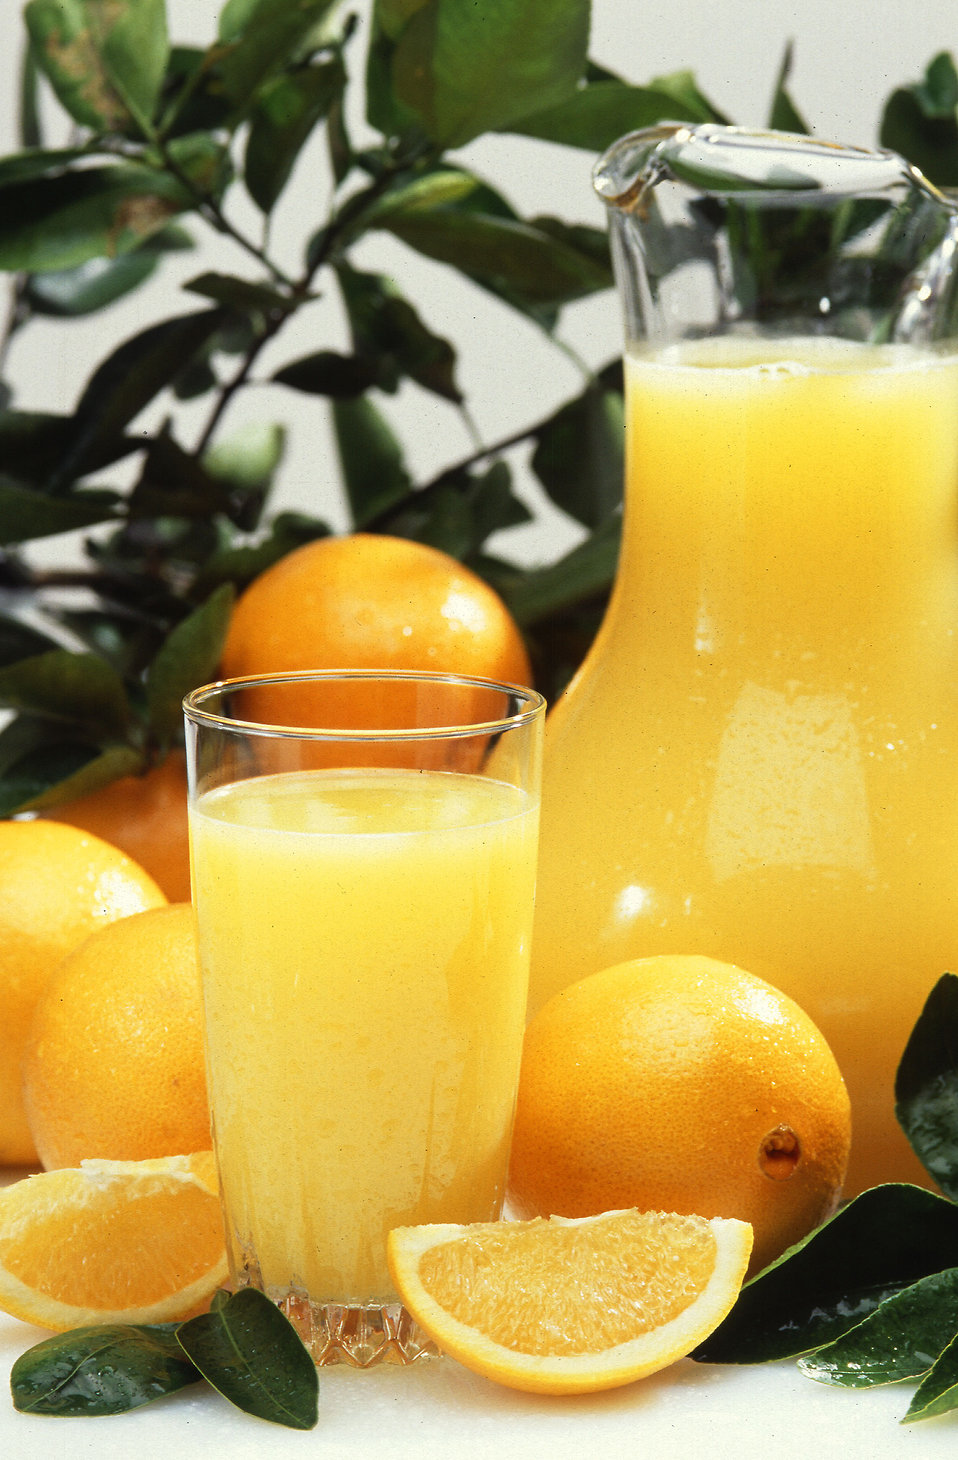 A display of oranges and orange juice : Free Stock Photo